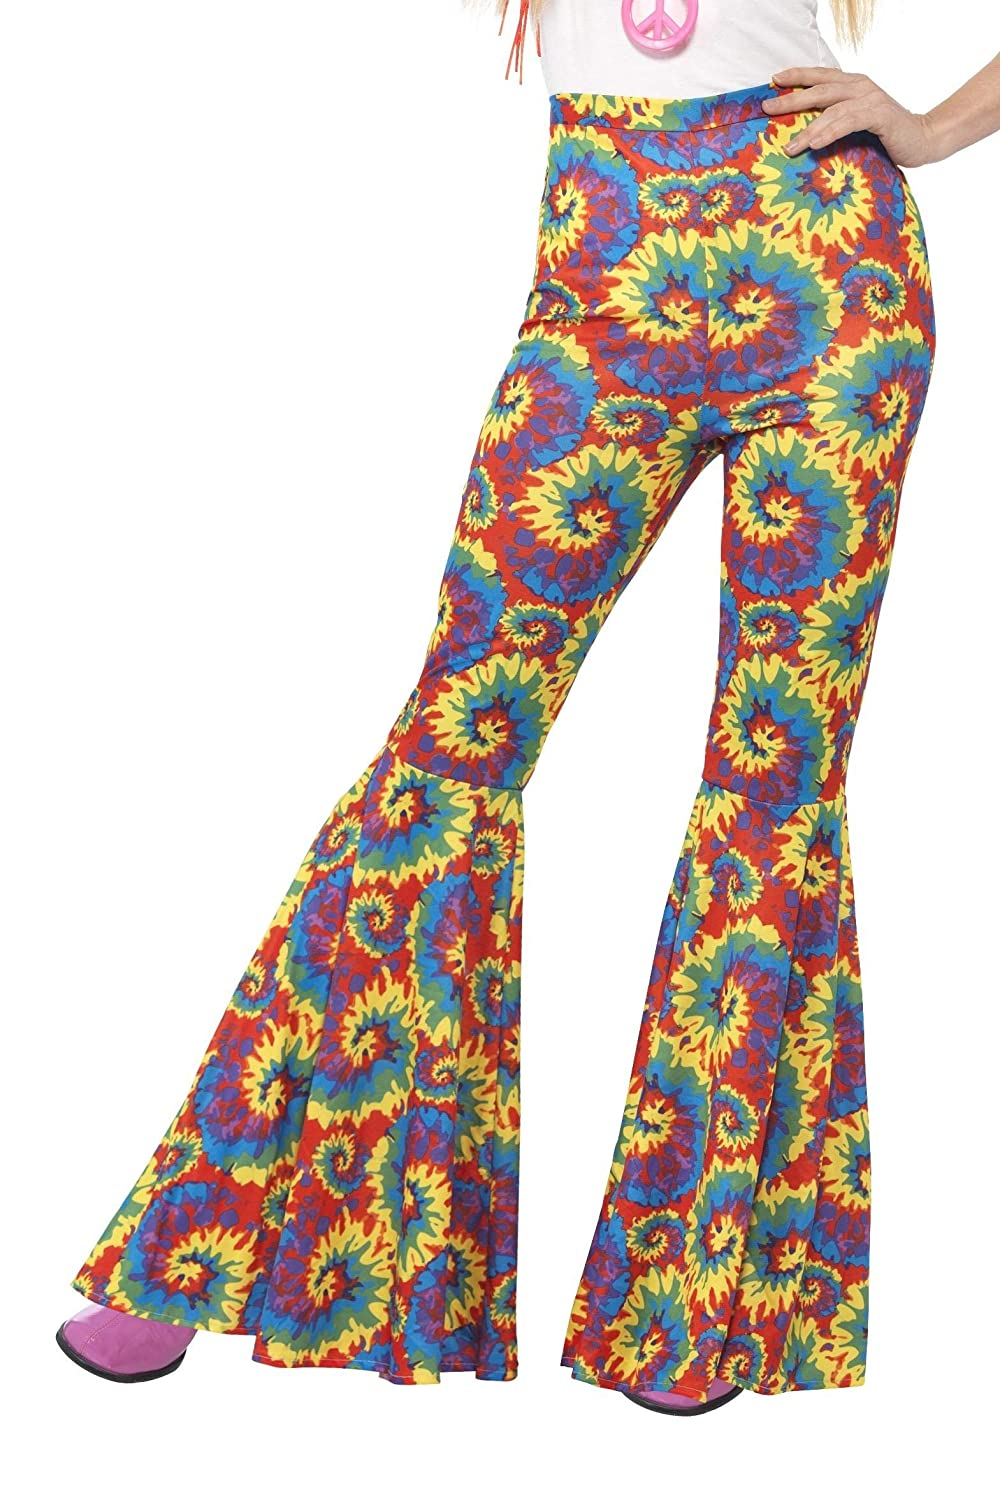 Hippie Dress | Long, Boho, Vintage, 70s Adults Womens 70s Flared Groovy Tie Dye Disco Pants Costume $26.97 AT vintagedancer.com